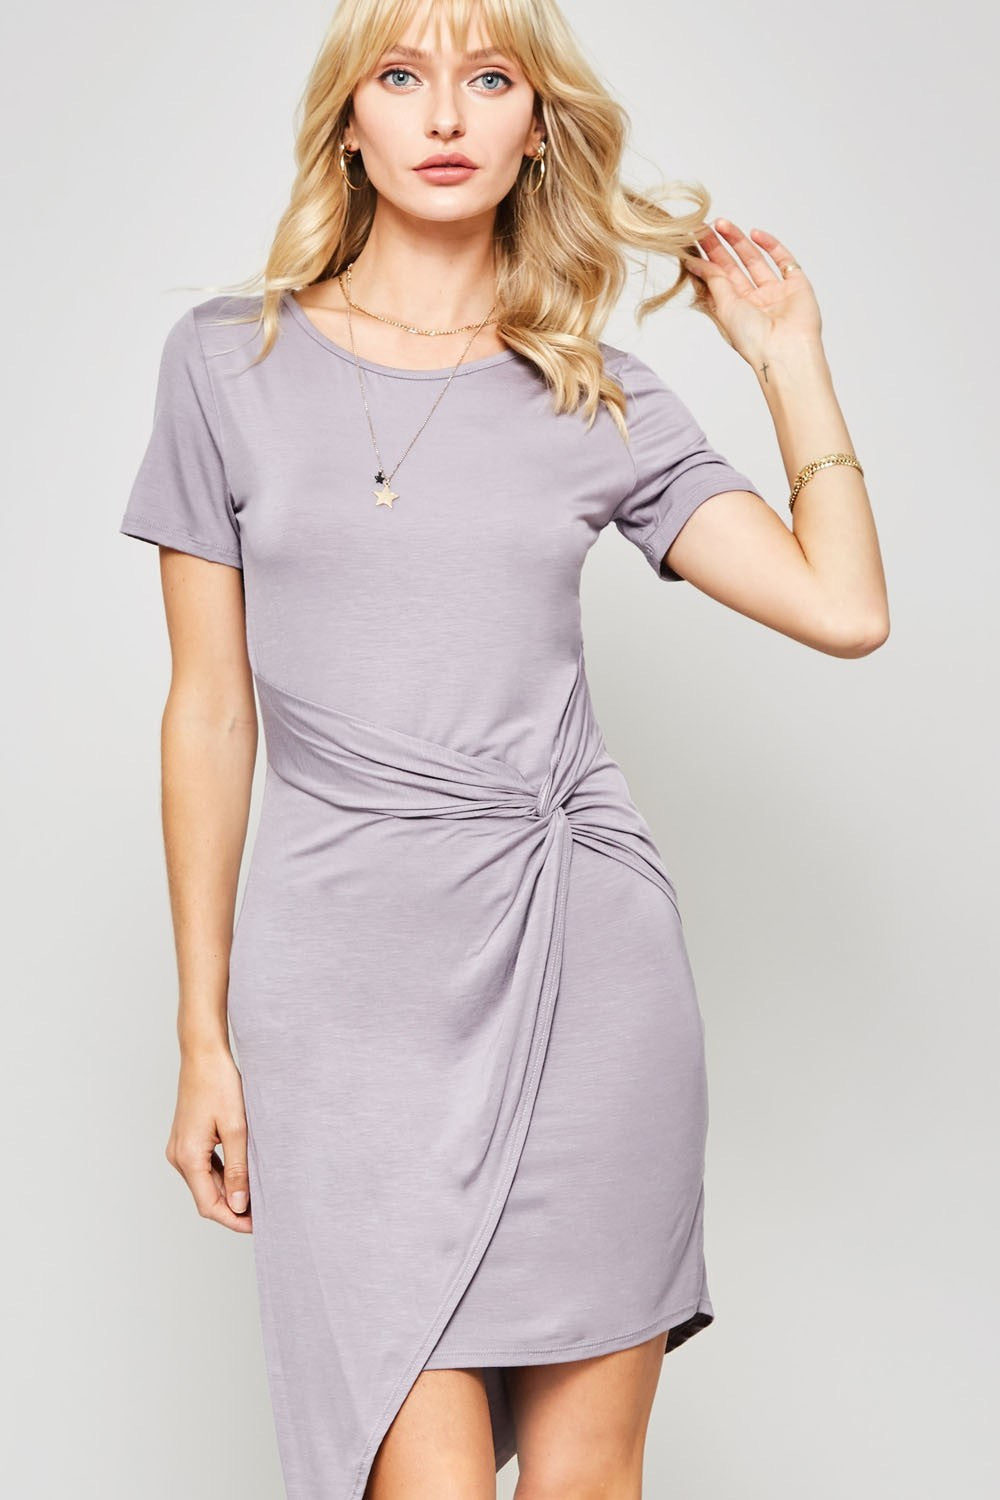 SIDE KNOT ASYMMETRICAL KNIT DRESS